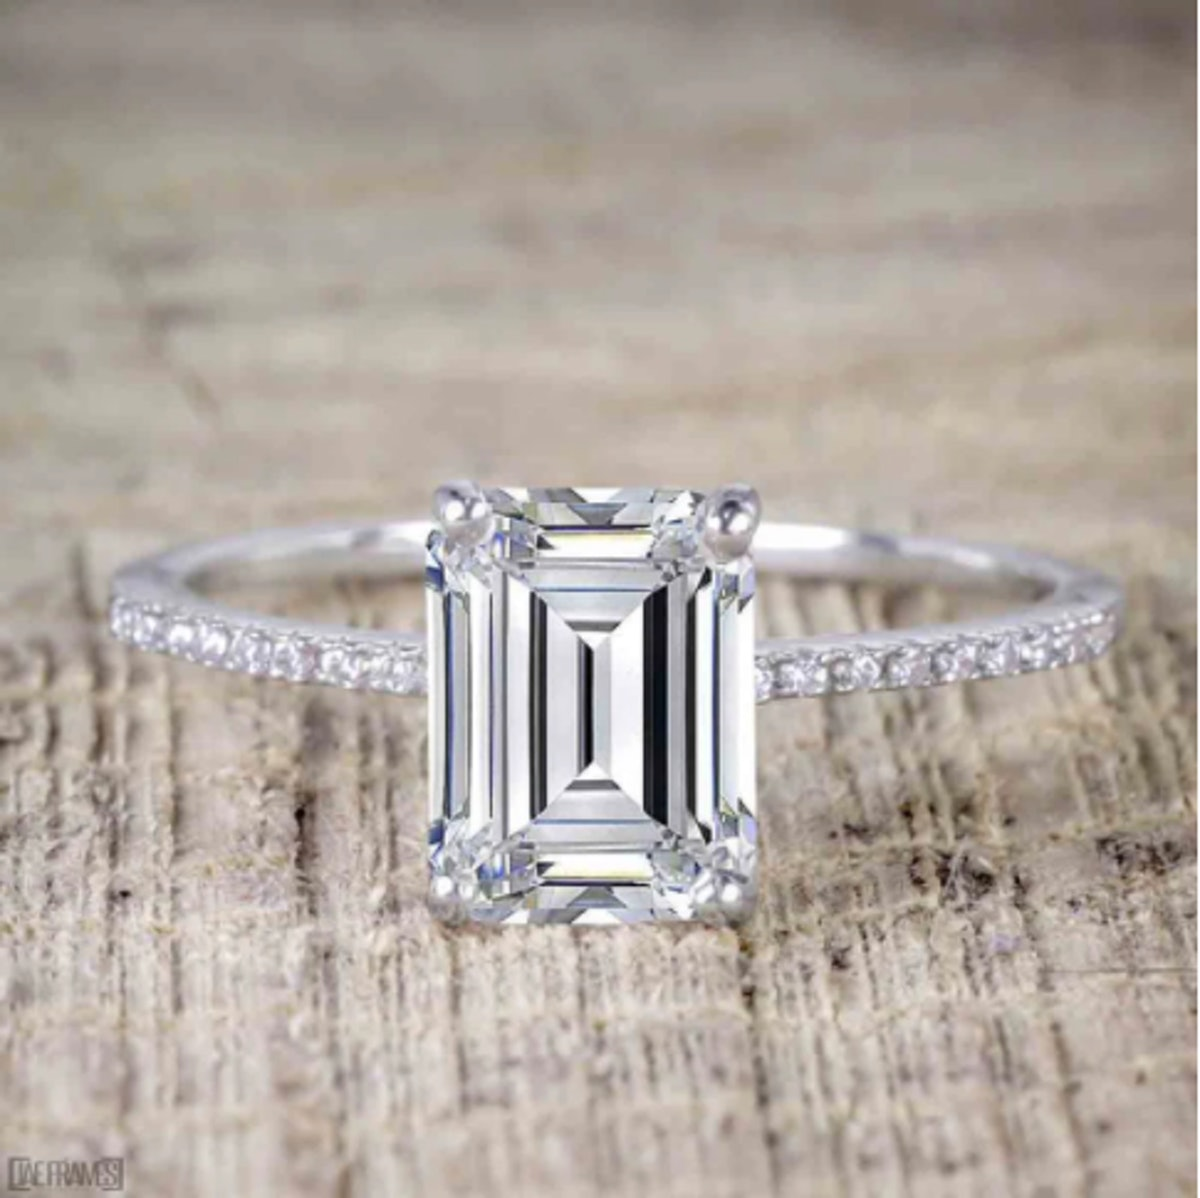 1.25 Carat emerald cut Moissanite and Diamond Solitaire Engagement Ring in 10k White Gold